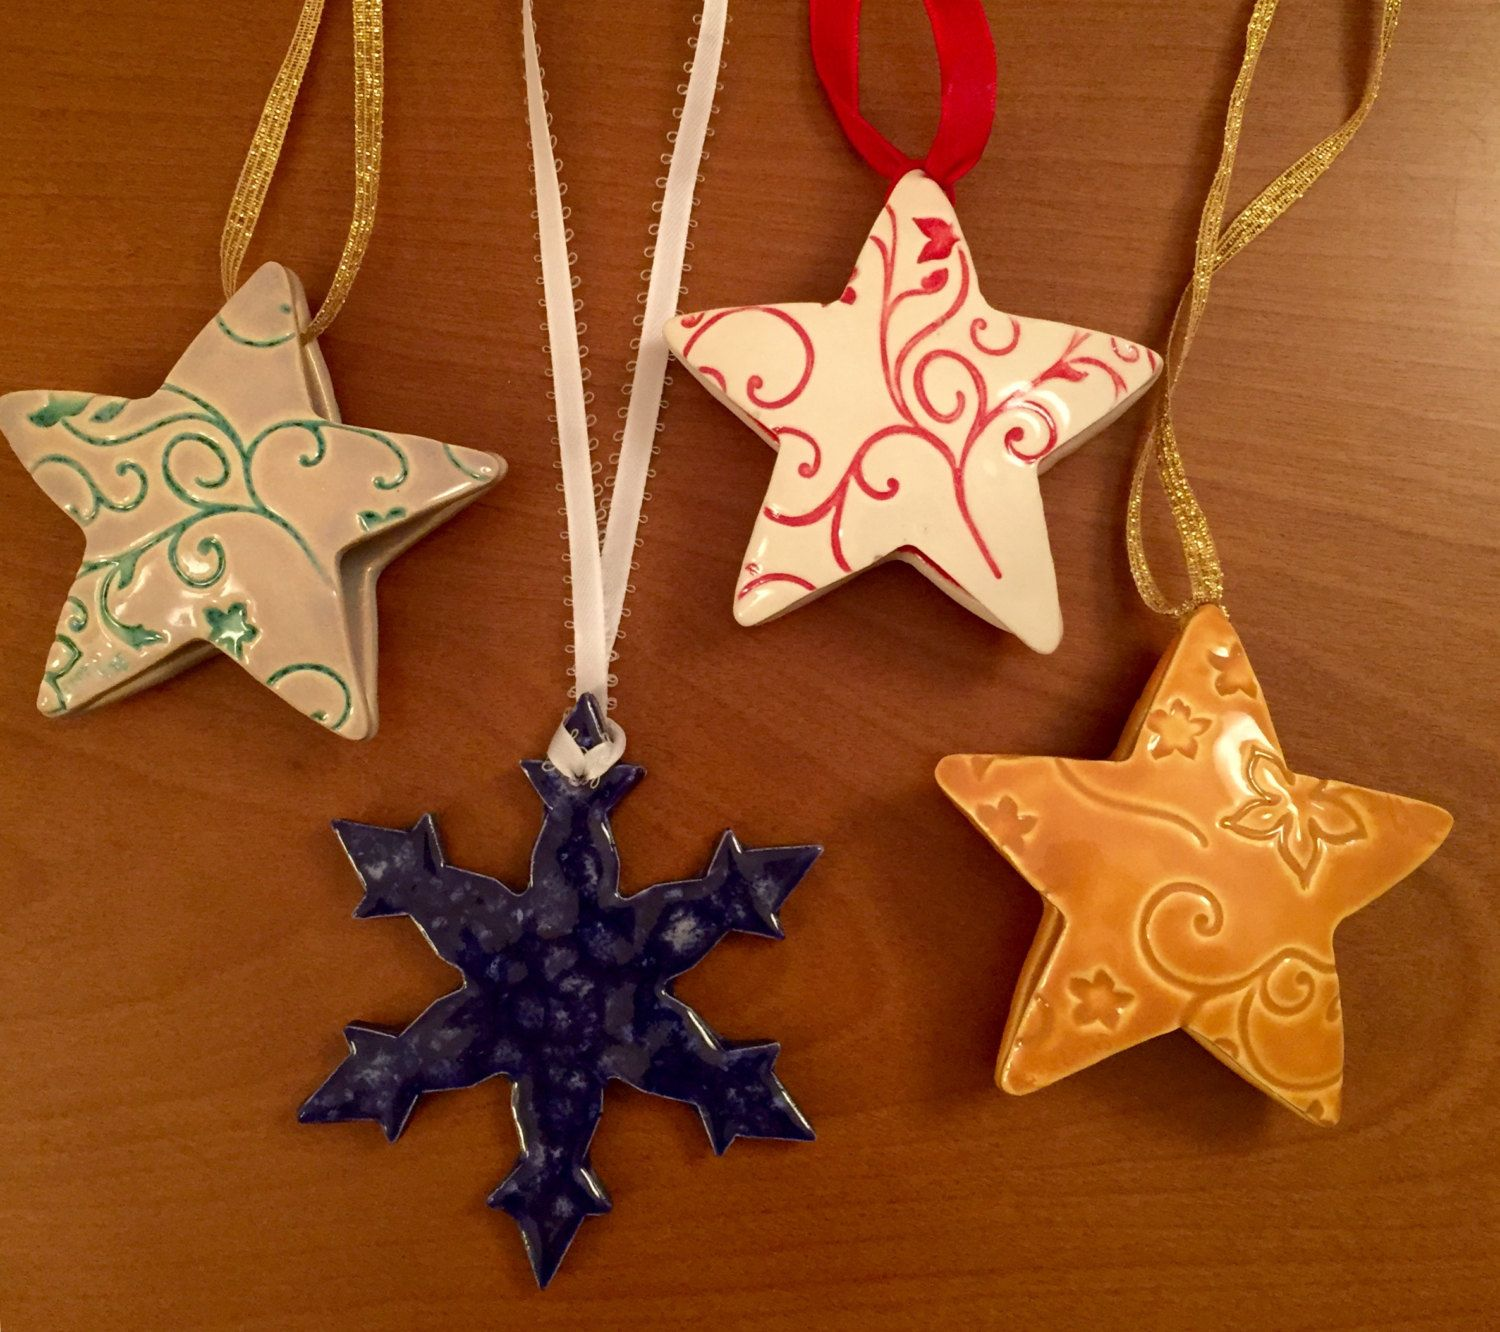 Christmas Ornament Workshop by LivingWaterPottery on Etsy